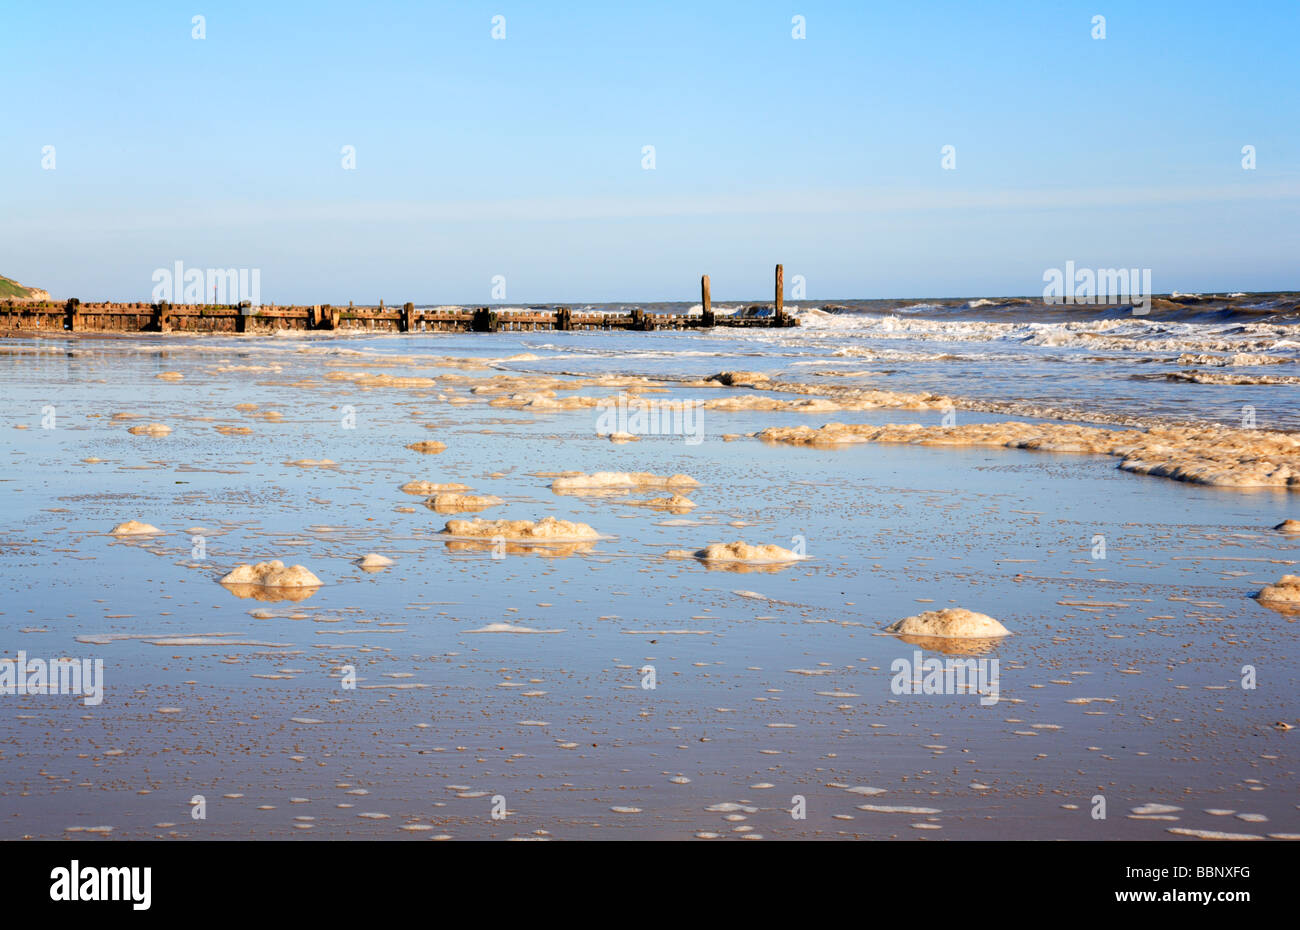 Spume on the beach at Mundesley, Norfolk, United Kingdom. - Stock Image